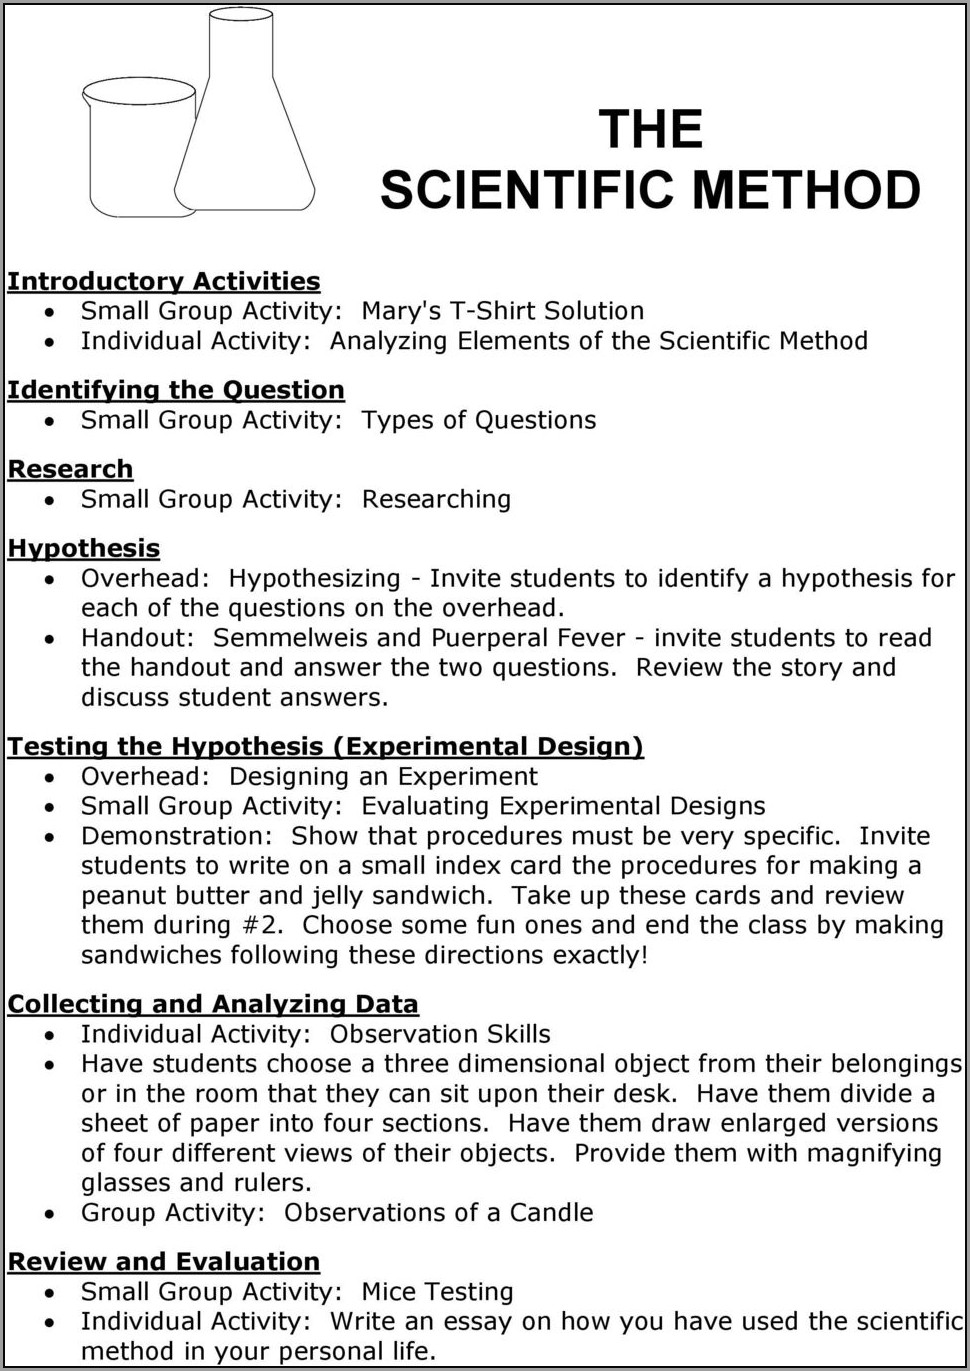 Scientific Method Story Worksheet Analyzing The Elements Of A Scientific Method Answer Key